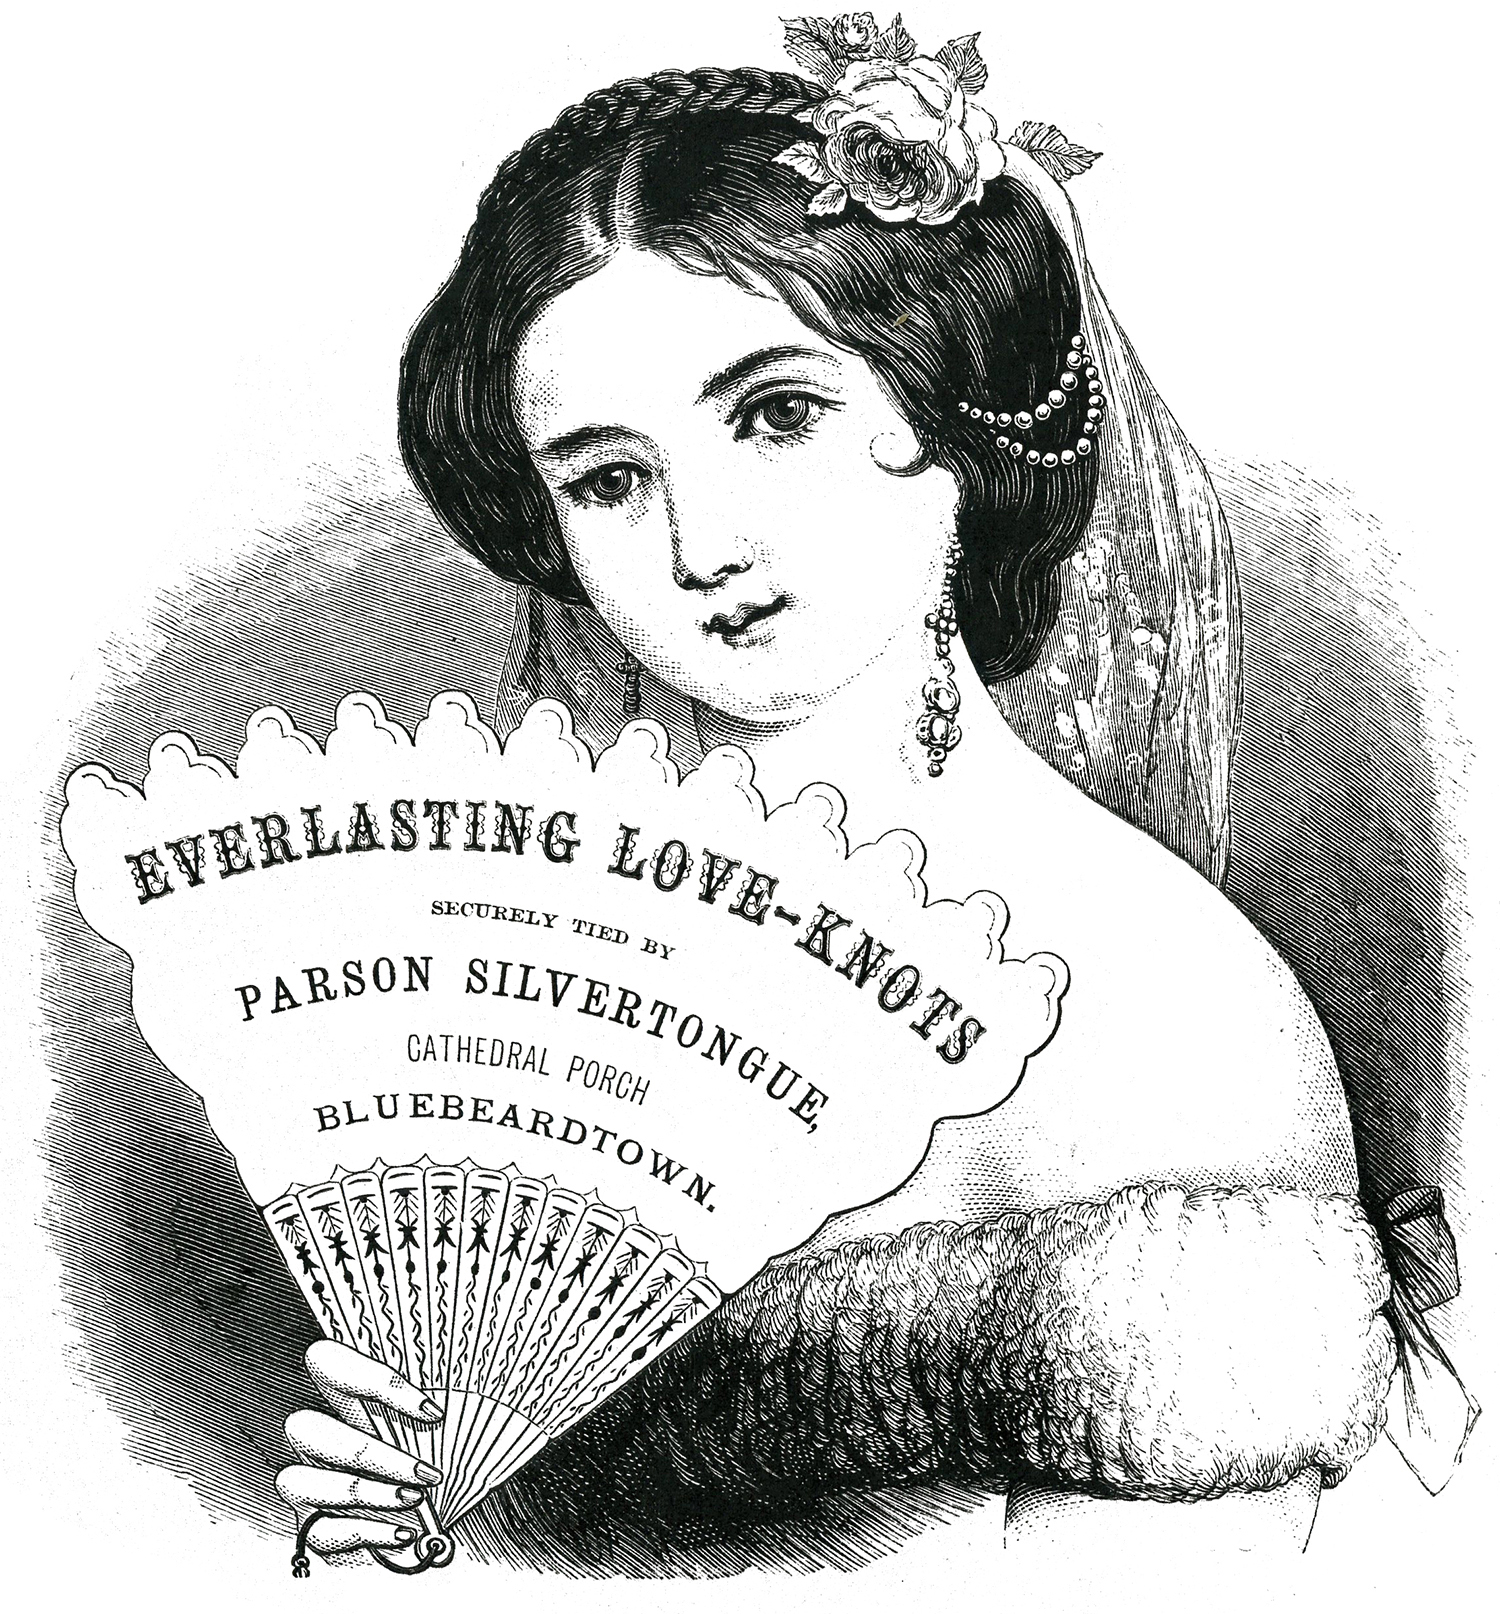 Free Vintage Label Images - Stunning Lady with Fan - The ...